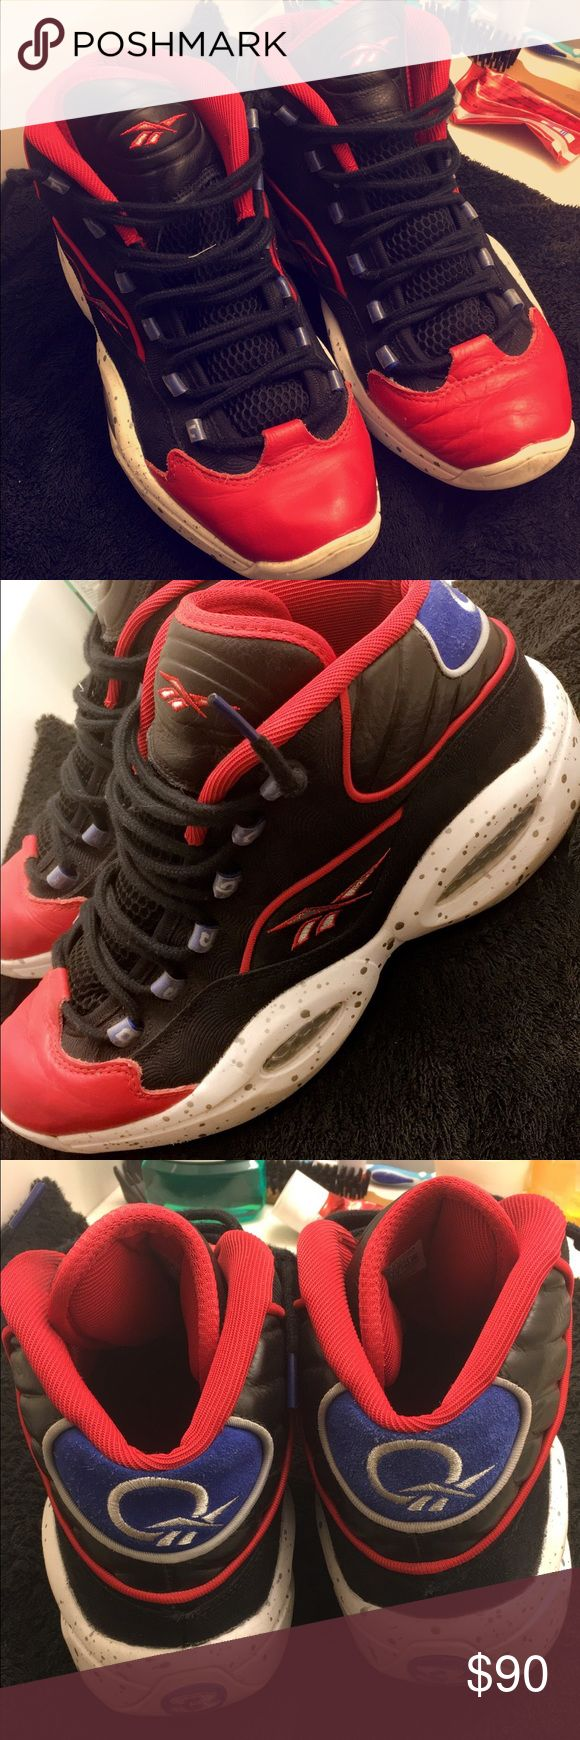 Allen Iverson Questions - First Ballots Barely worn . 9.5/10 condition . SHIPPED NEXT day !! Reebok Shoes Sneakers